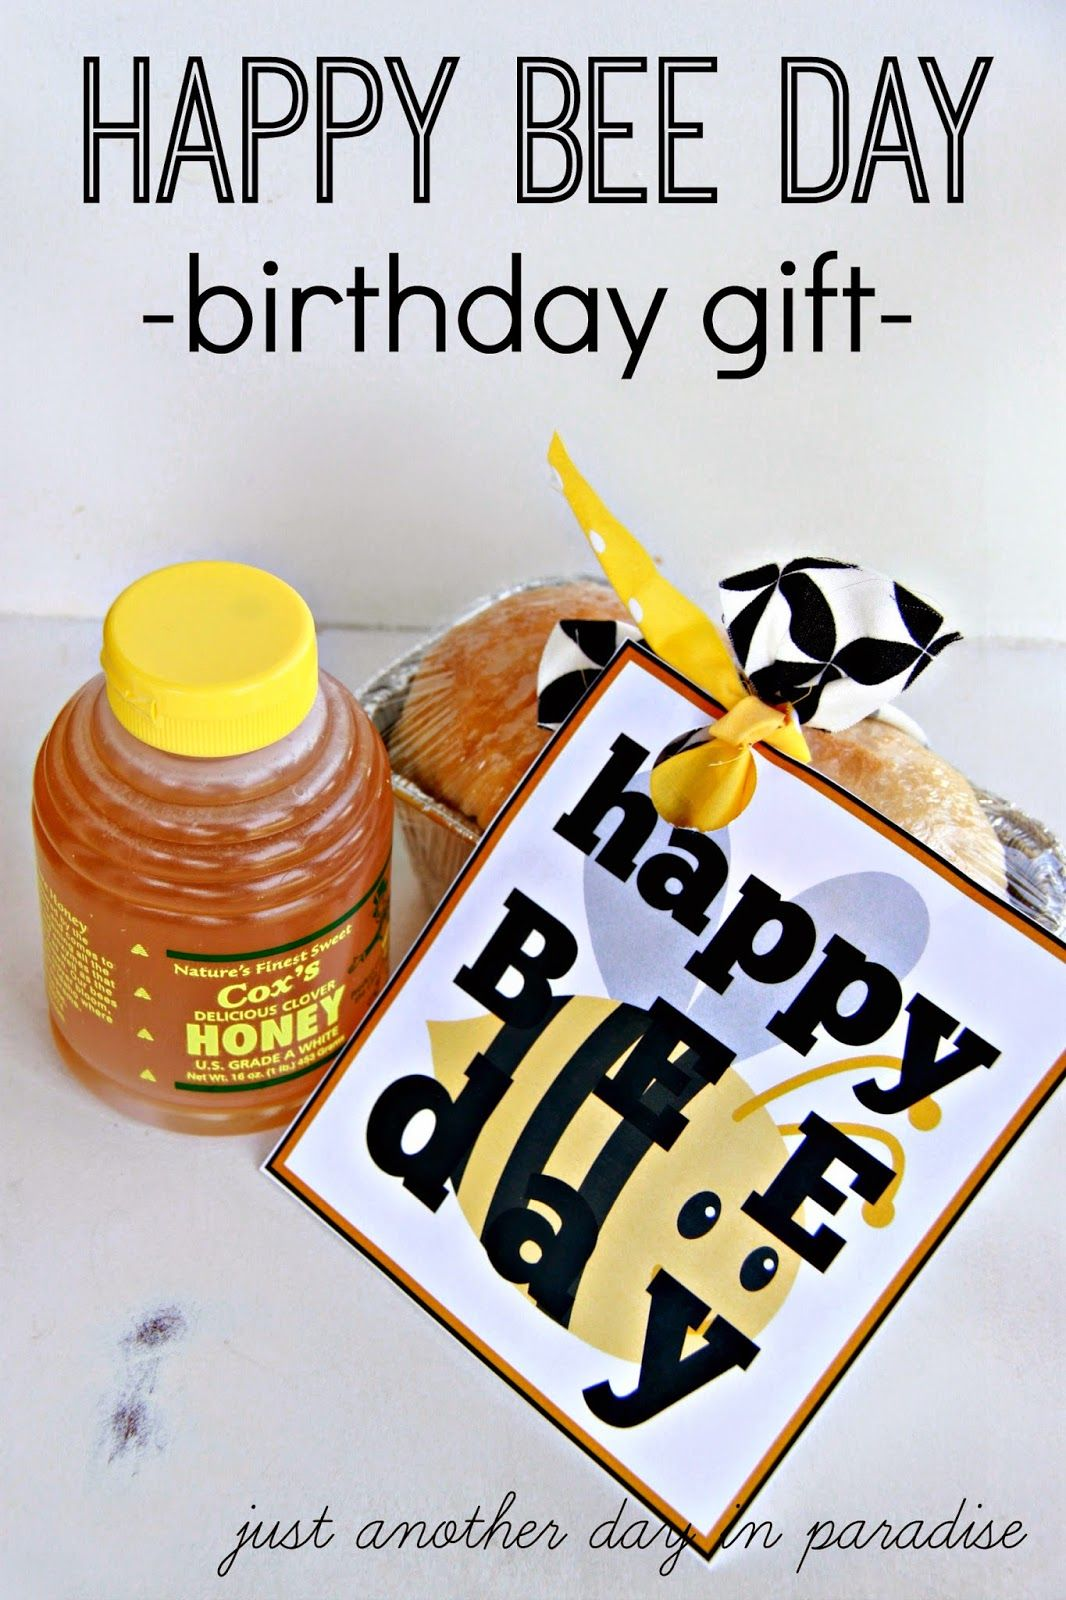 Im excited to share today 101 birthday gift ideas for your friends i excited to share today birthday gift ideas for your friends including my happy bee day with printable i am joining forces w negle Images